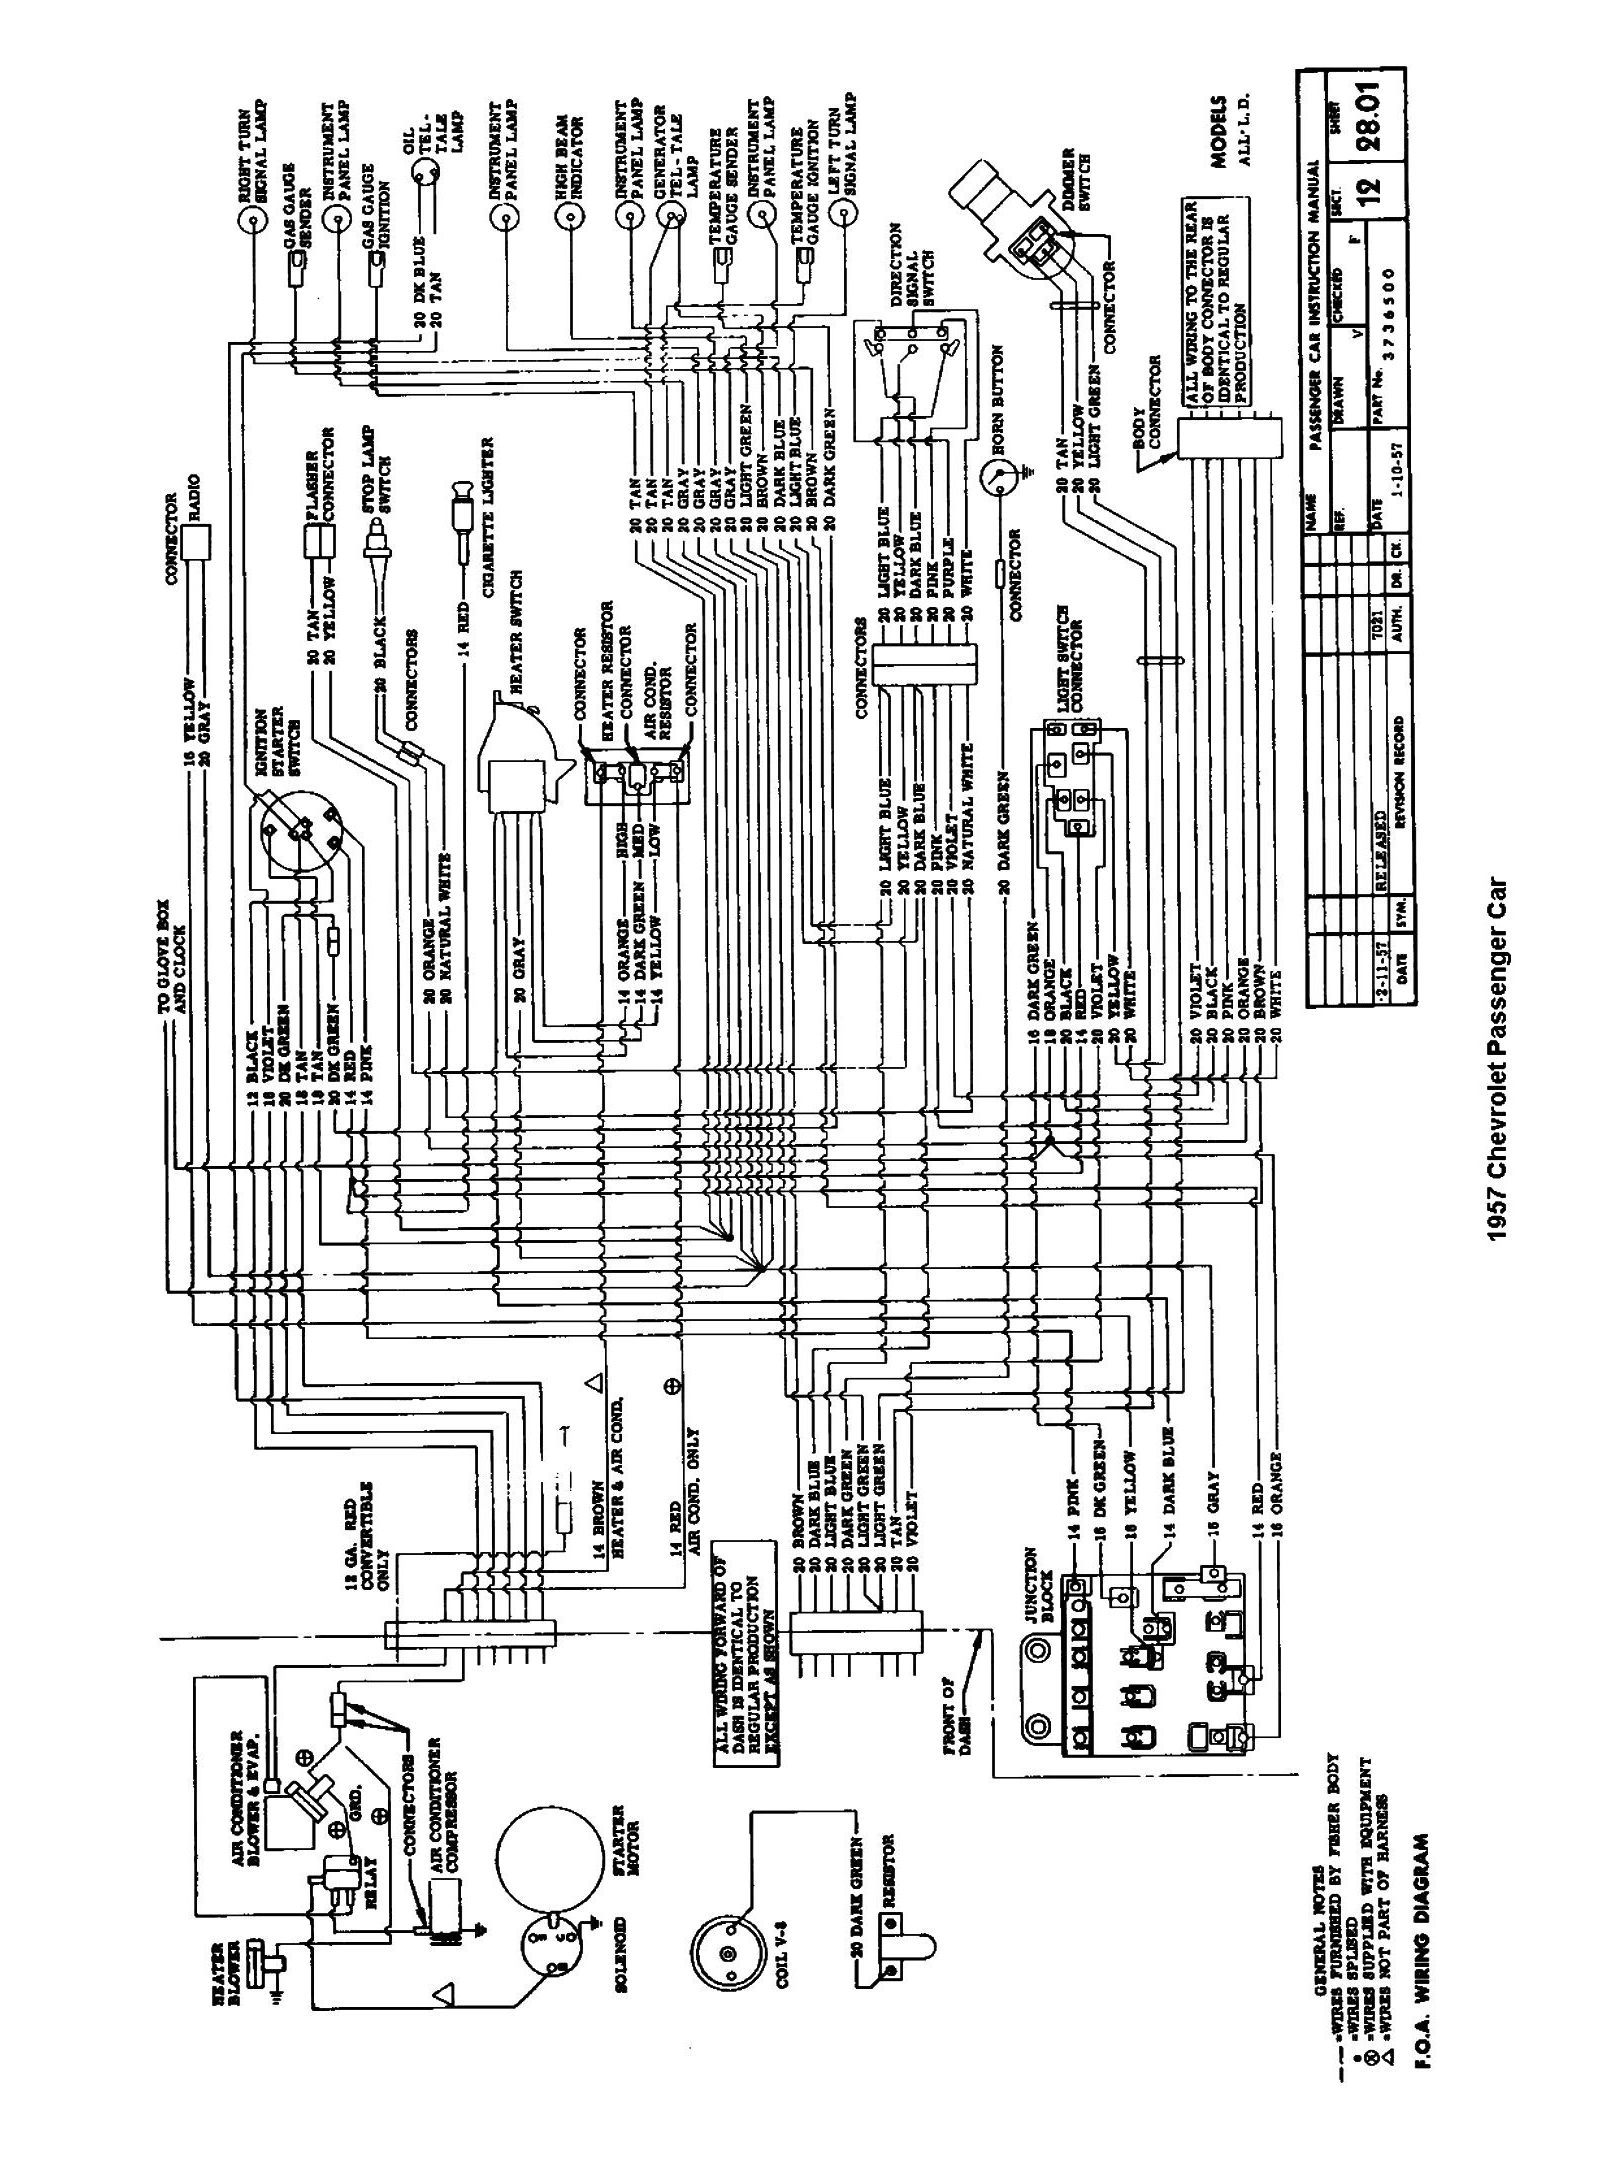 1939 Chevy Wire Diagram | Schematic Diagram on 1985 chevy truck wiring diagram, chevy truck ignition diagram, chevy turbo 400 transmission wiring diagram, chevy truck motor diagram, gm ignition switch wiring diagram, 2004 chevy malibu headlight wiring diagram, chevy truck spark plug wires diagram, 74 chevy truck wiring diagram, chevy silverado trailer wiring harness, 96 chevy truck wiring diagram, chevy truck headlight assembly diagram, chevy wiring schematics, speed sensor 1993 chevy wiring diagram, 1989 chevy truck wiring diagram, chevy truck radiator diagram, 1972 chevy truck wiring diagram, chevy truck fuse diagram, chevy truck transmission diagram, chevy truck master cylinder diagram, 63 chevy wiring diagram,